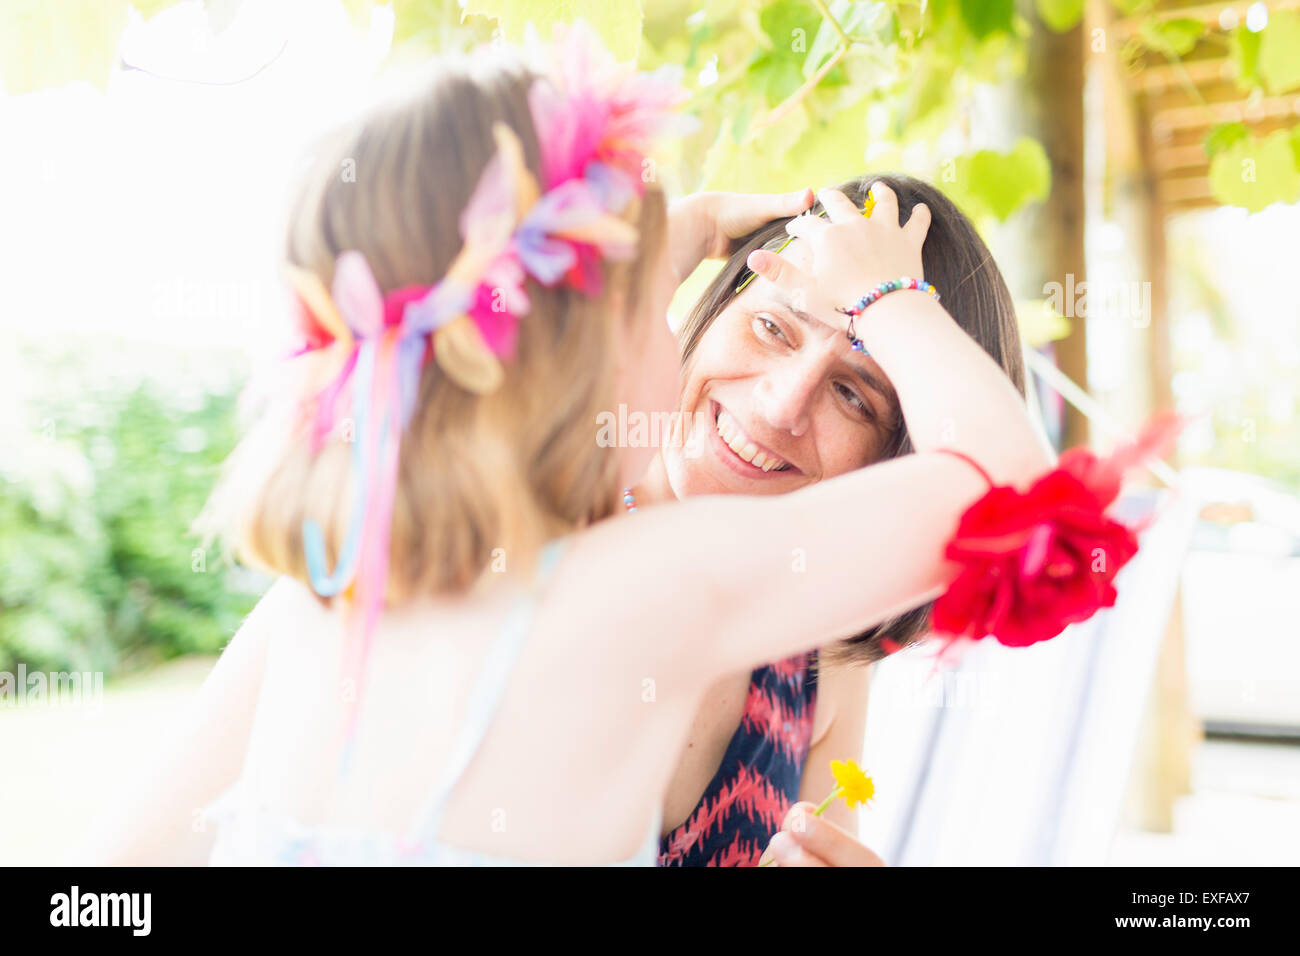 Daughter styling mother's hair - Stock Image